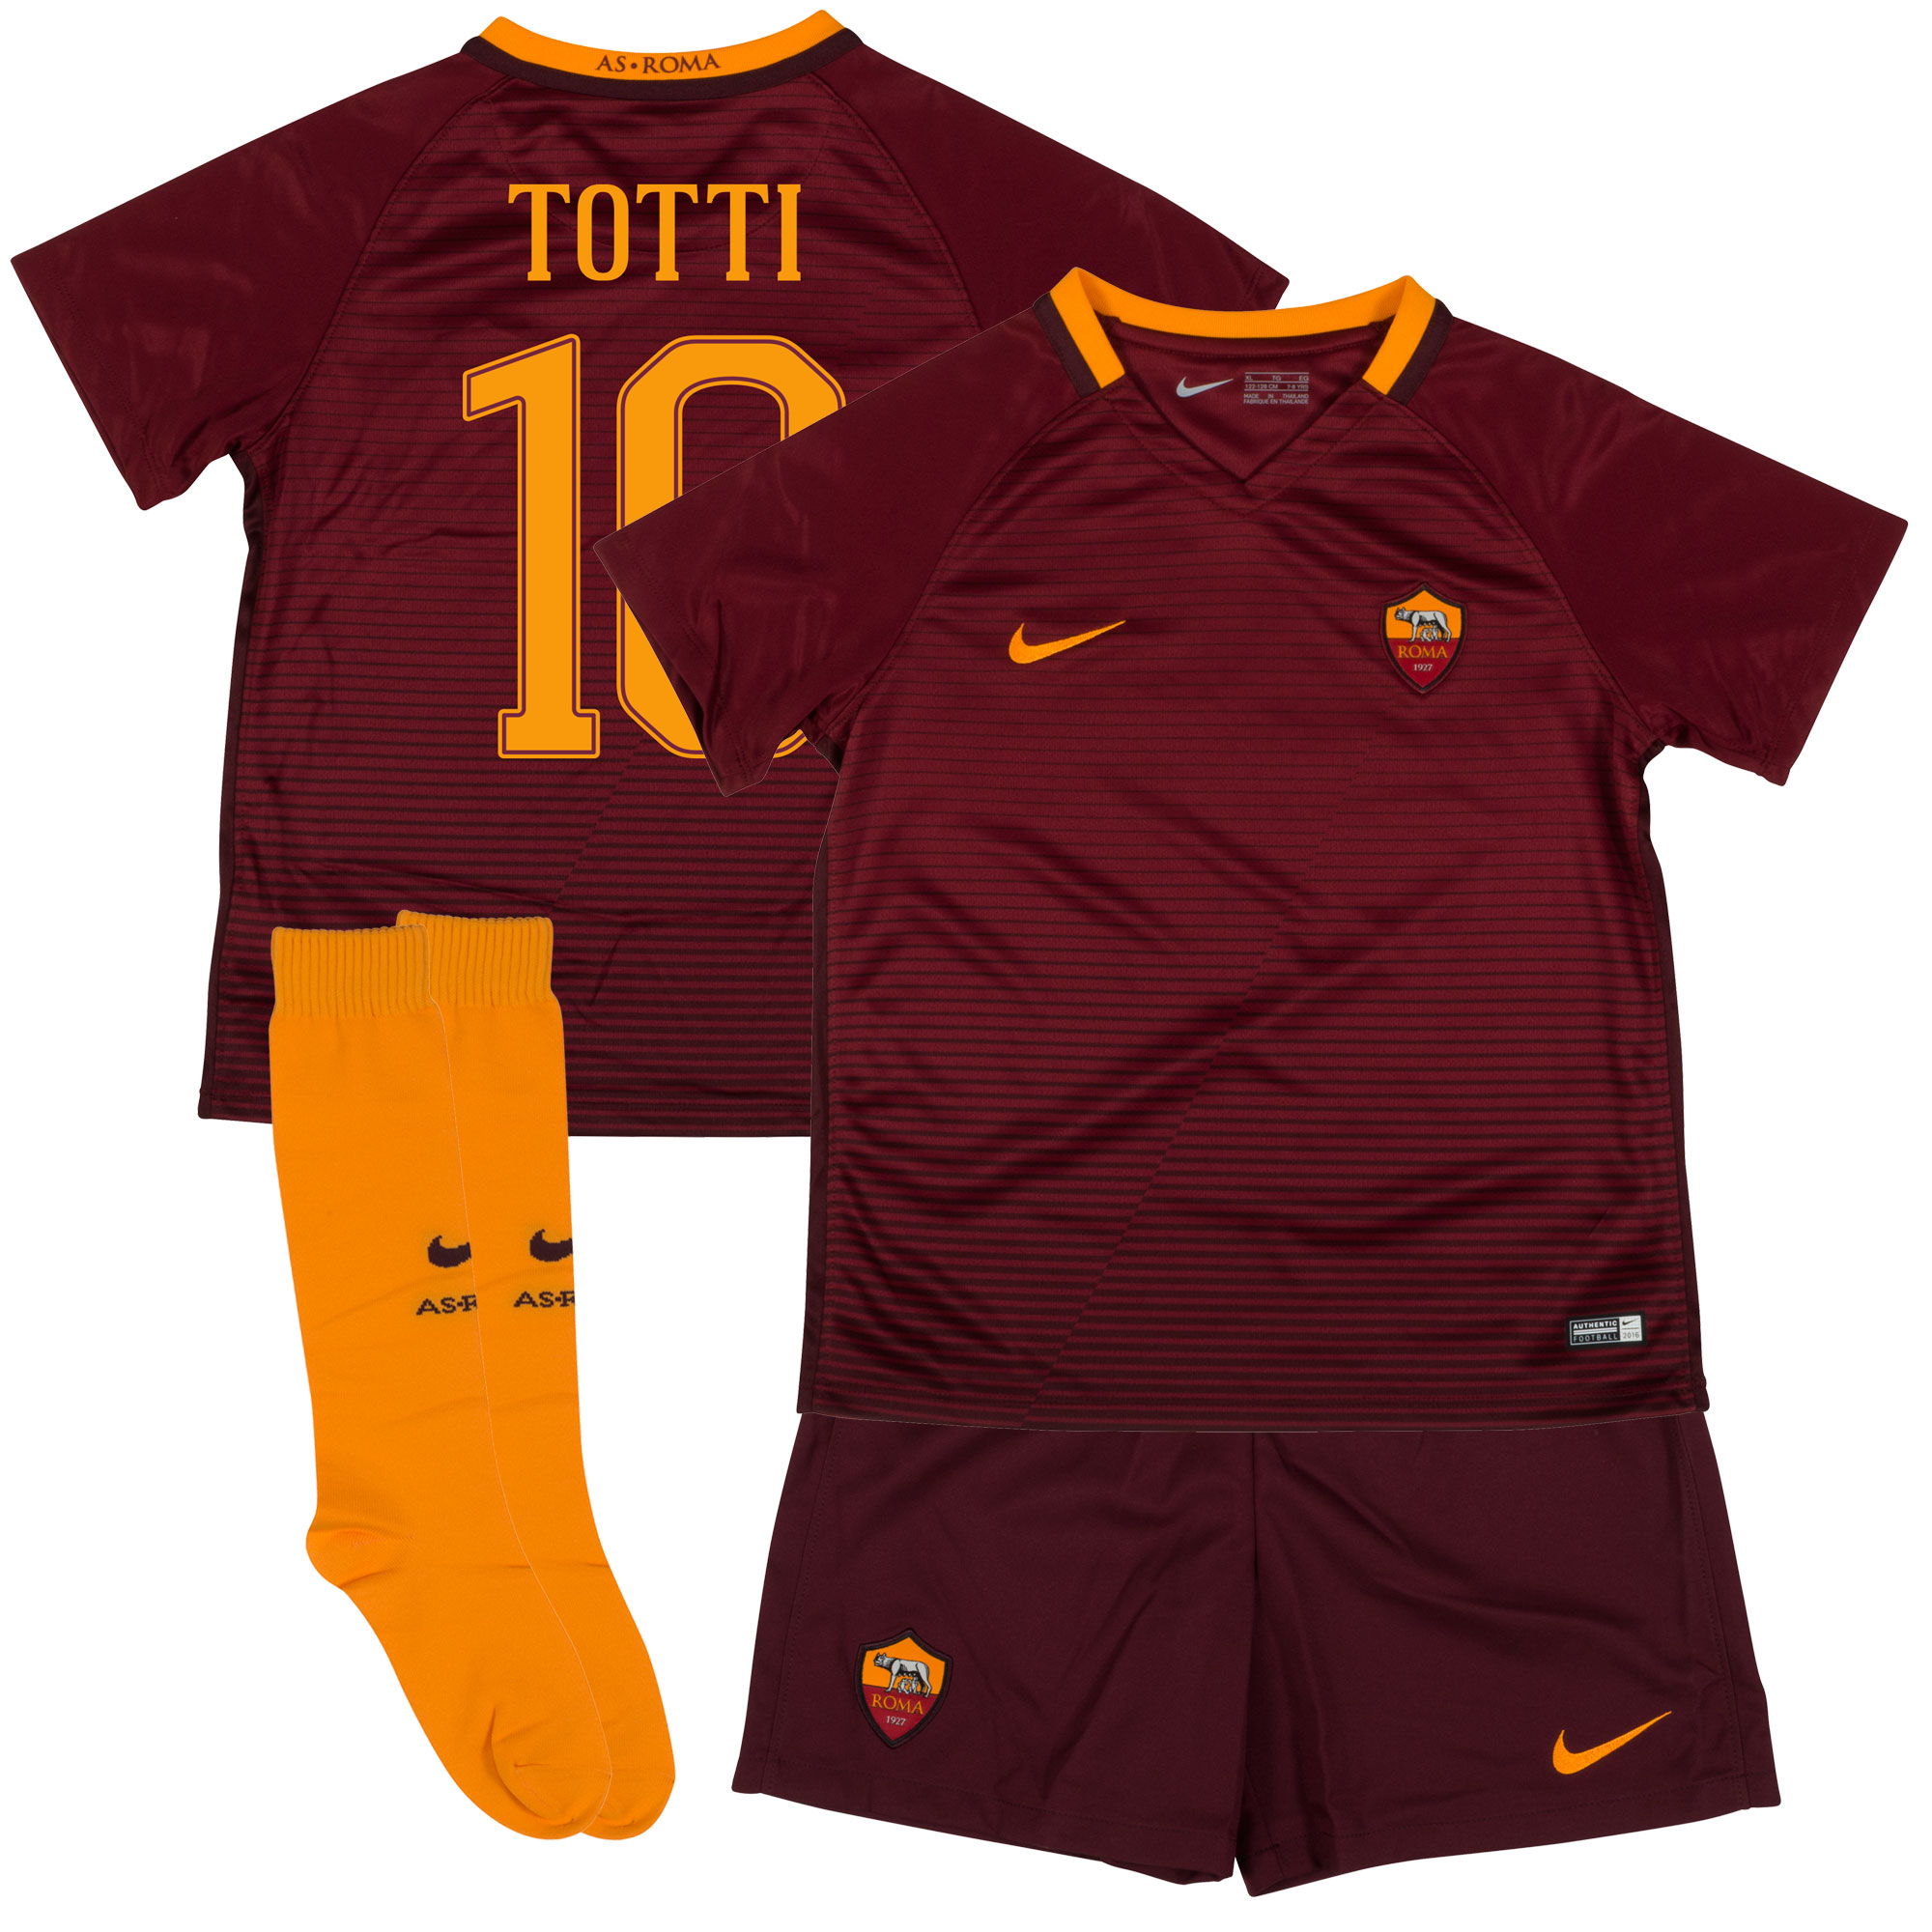 AS Roma Home Totti Little Boys Kit 2016 / 2017 (Fan Style Printing) - 110-116